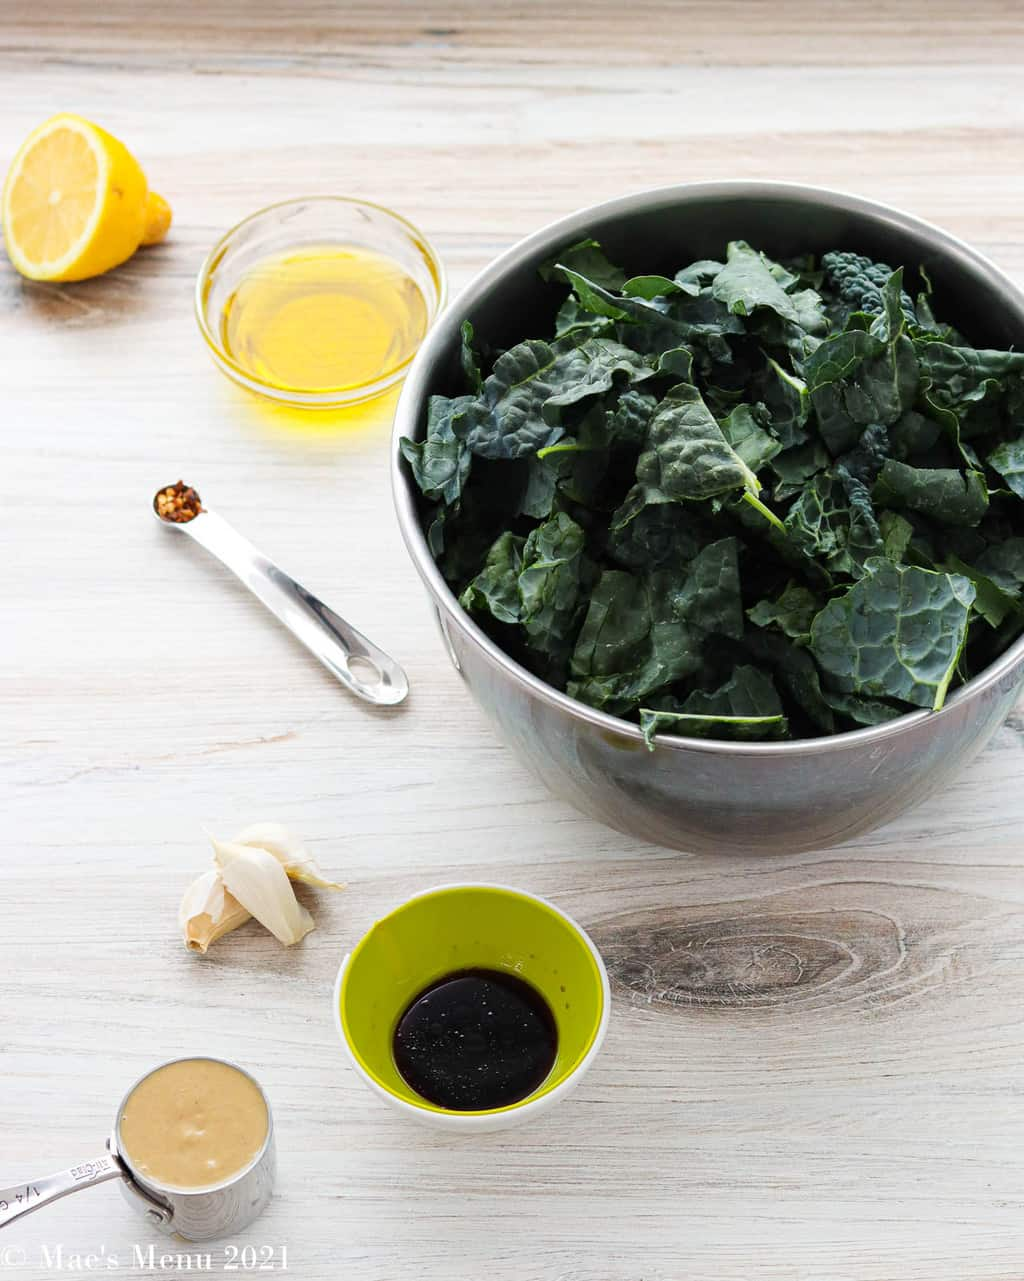 All of the ingredients for the warm kale salad